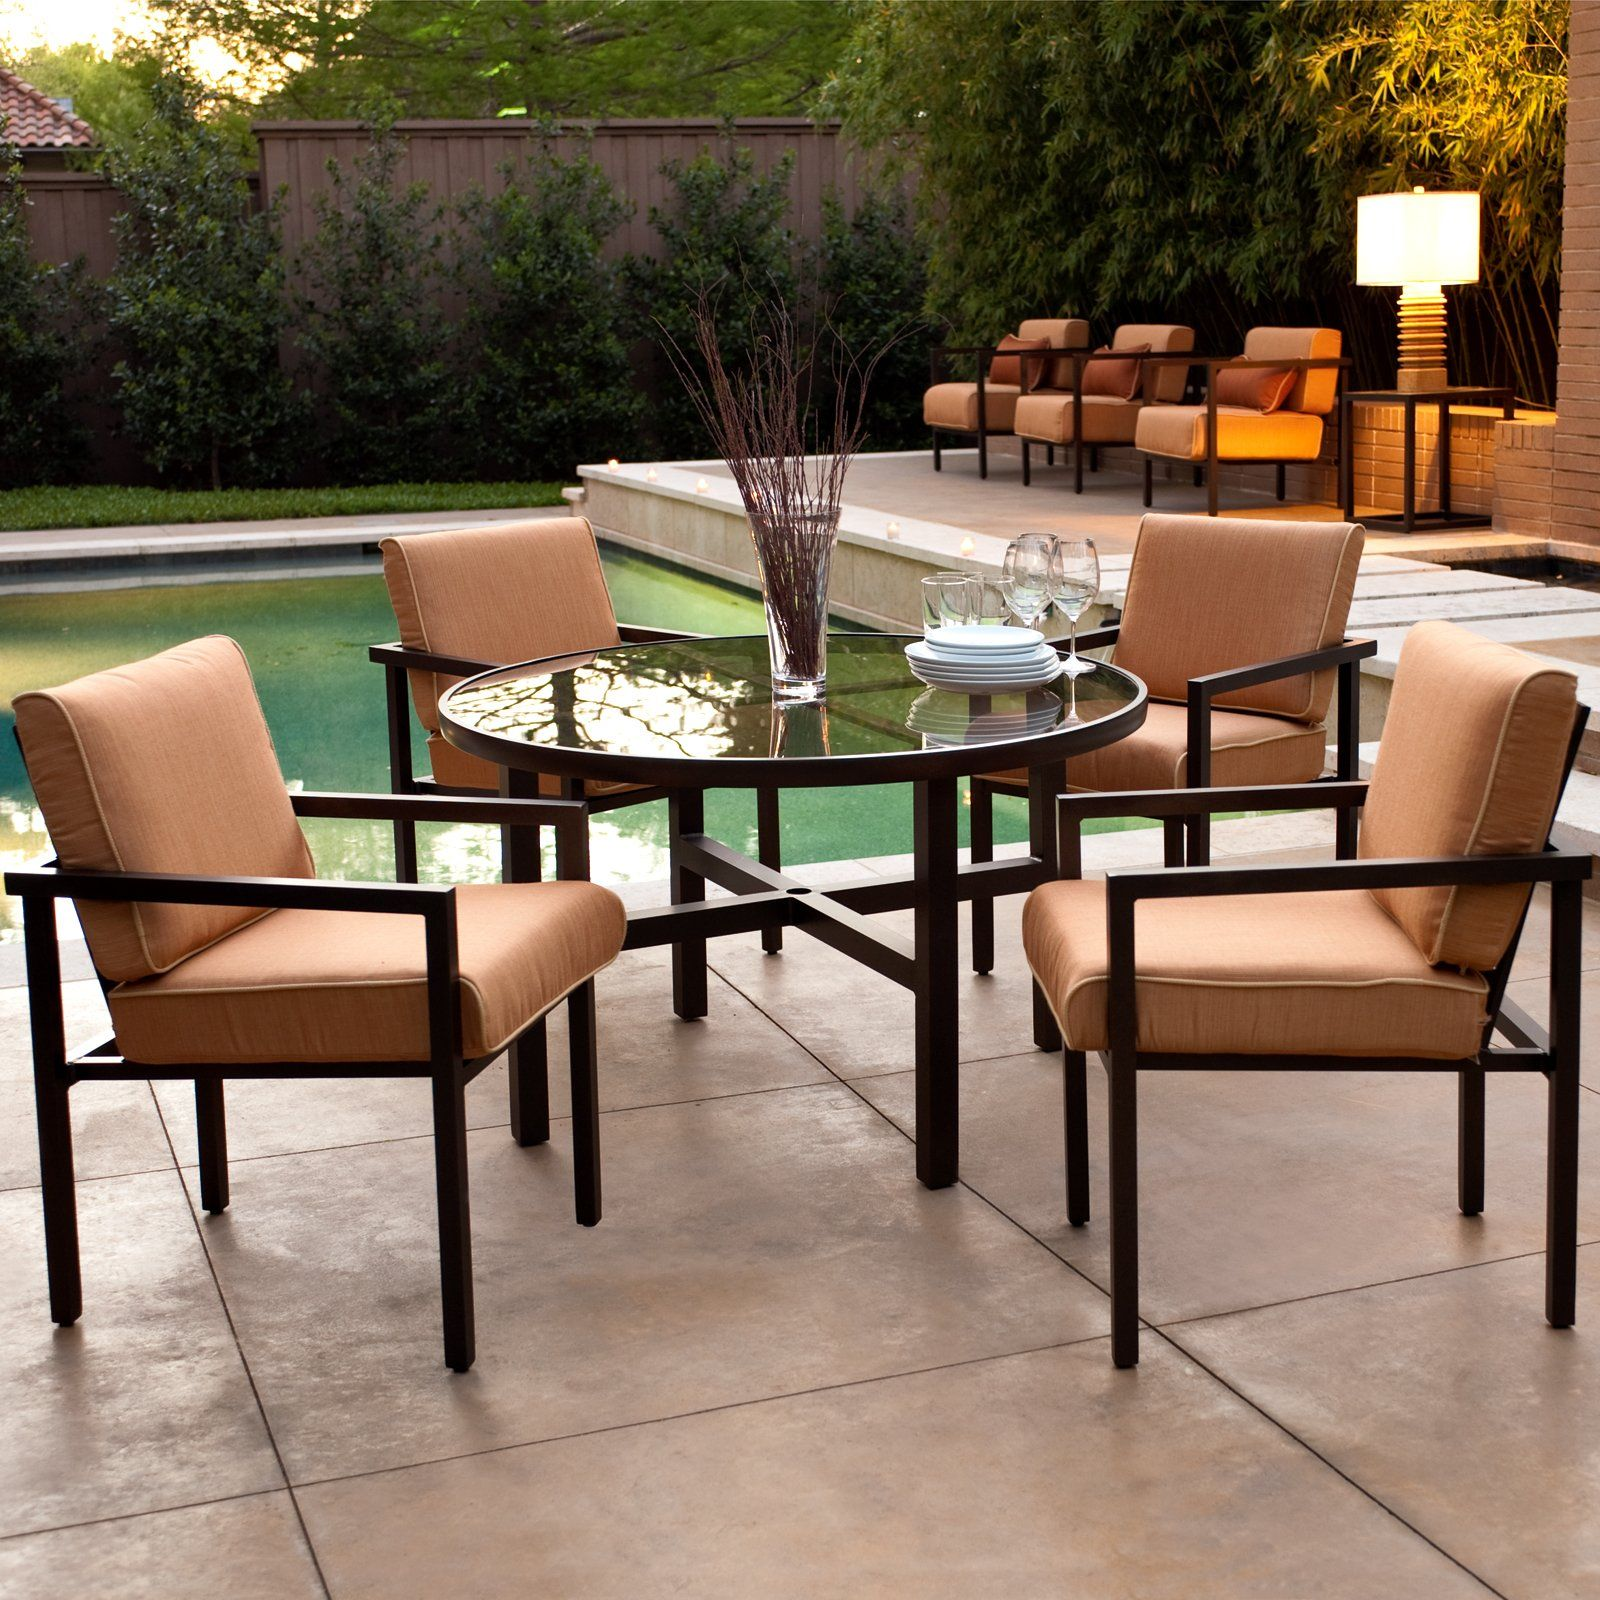 modern iron patio furniture. 22 Awesome Outdoor Patio Furniture Options And Ideas Modern Iron M